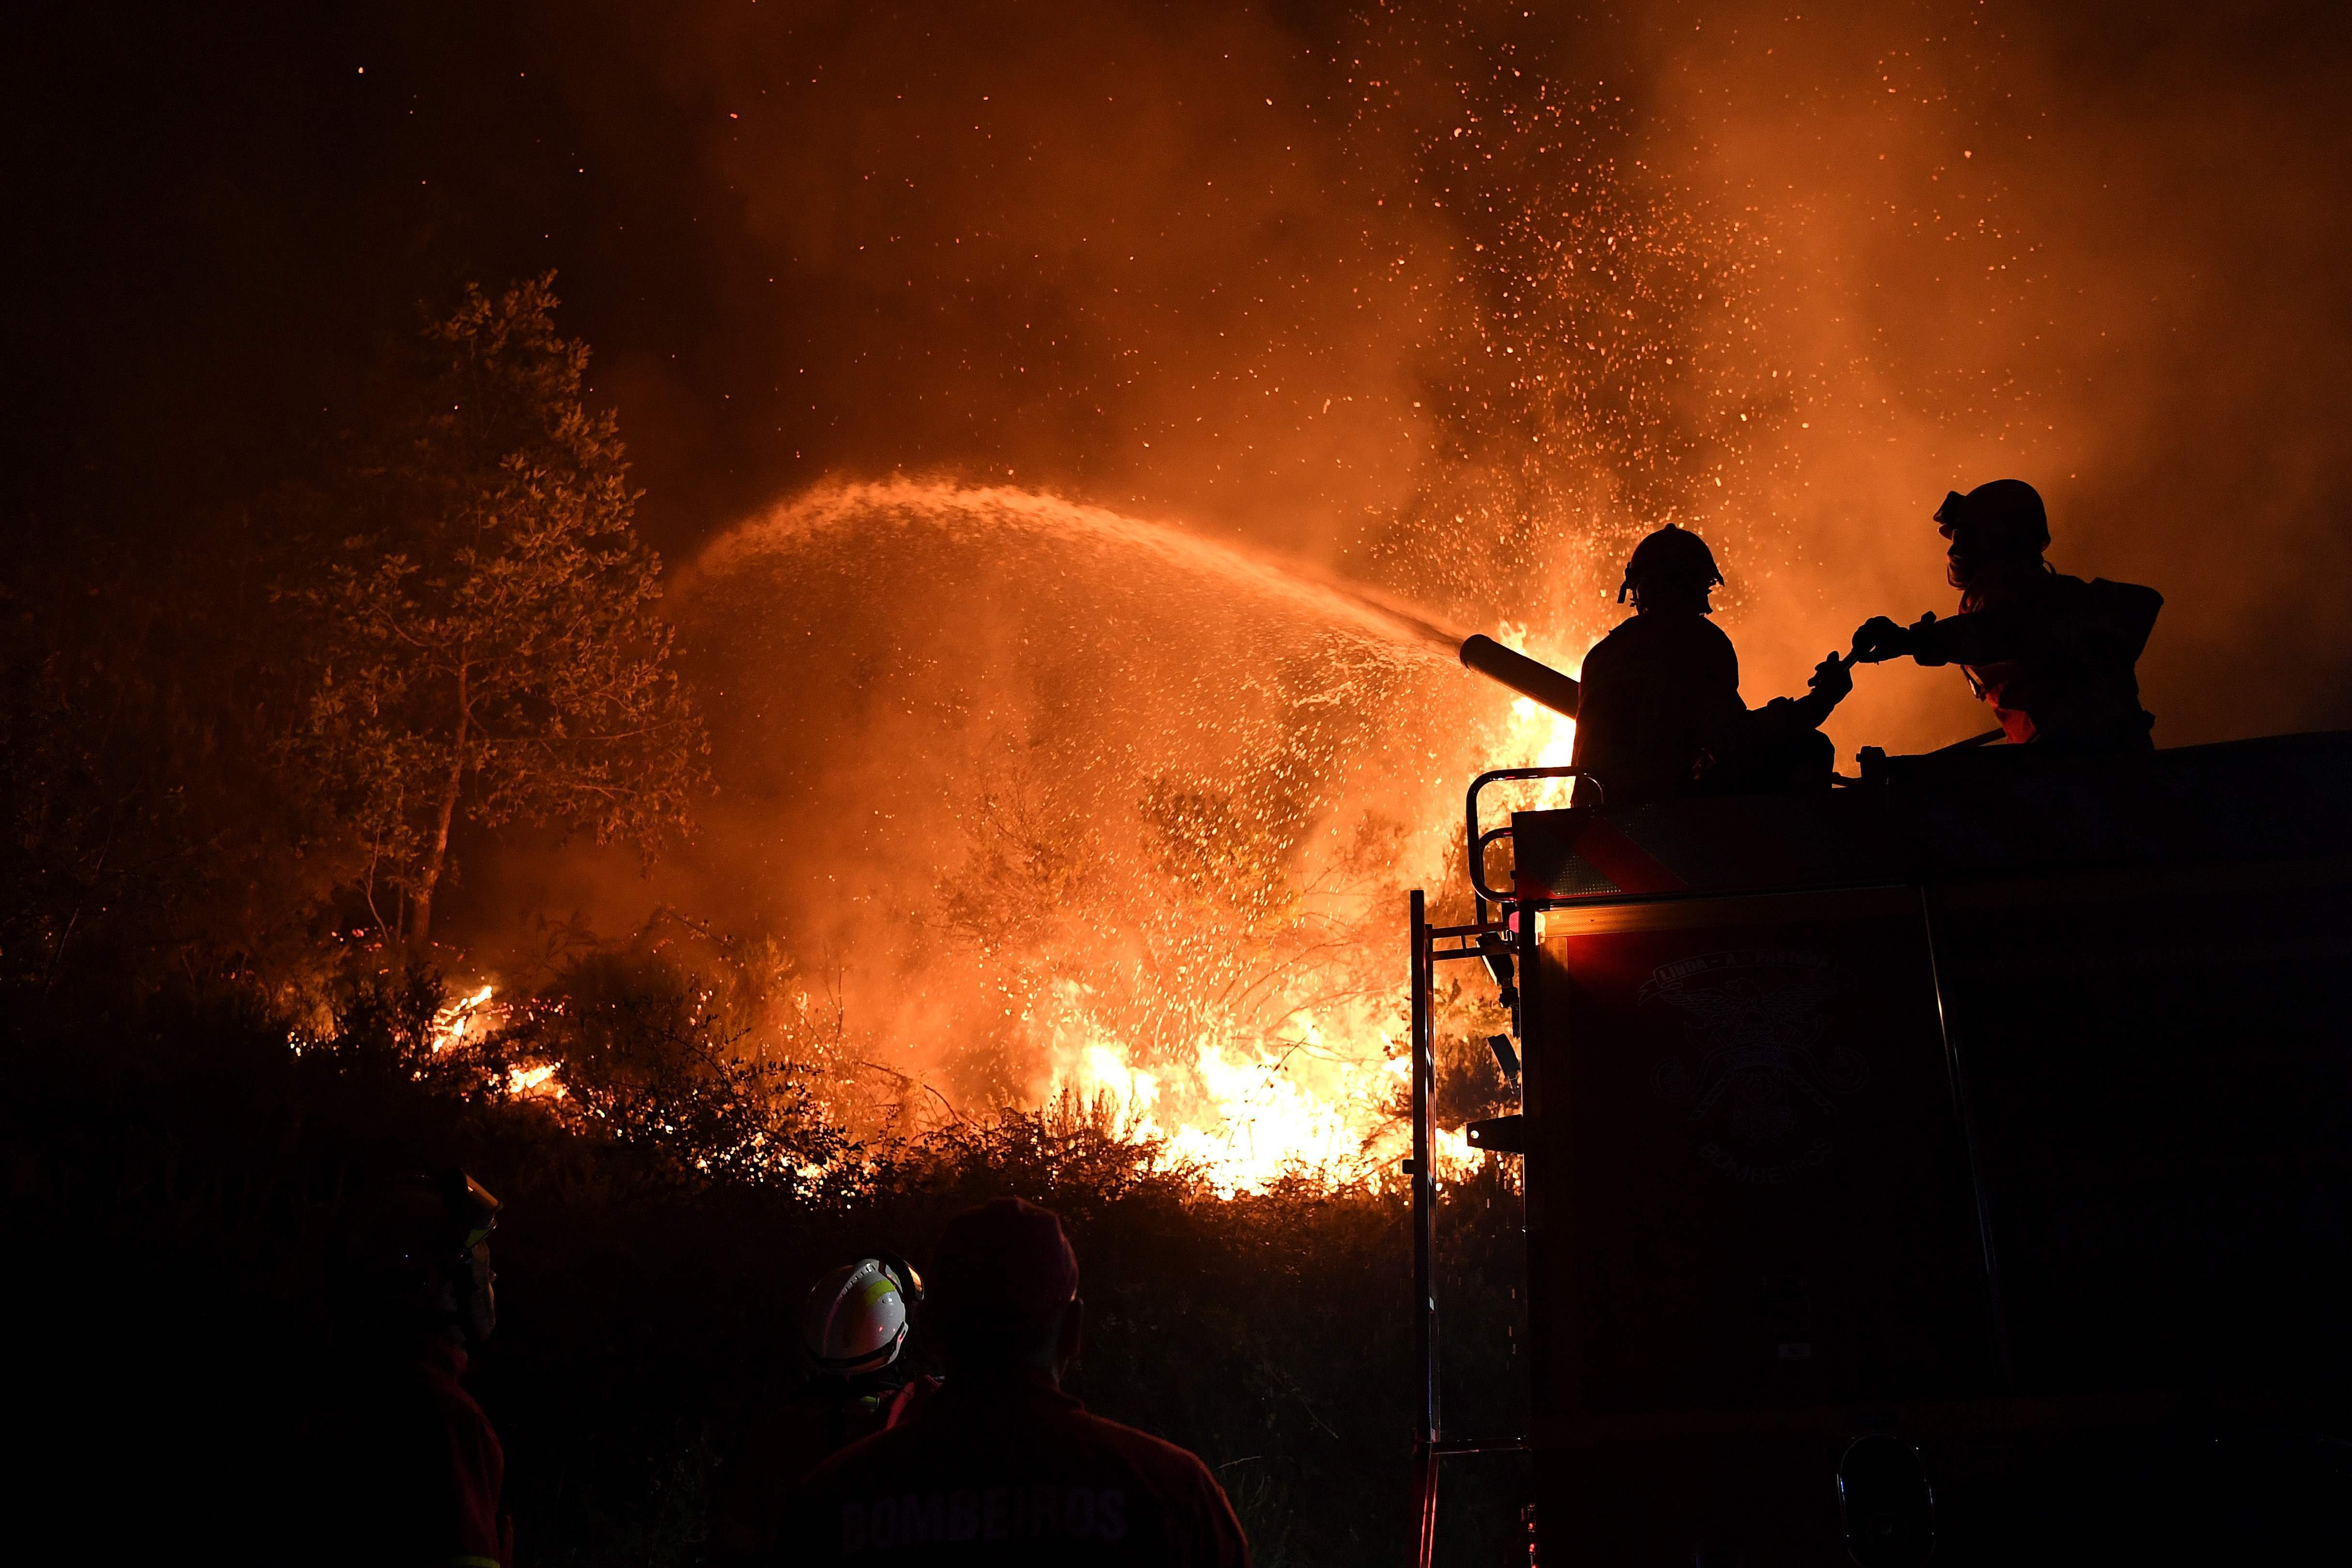 TOPSHOT - Firefighters try to extinguish a wildfire in Colmeal, near Gois on the night of June 21, 2017. The huge forest fire that erupted on June 17, 2017 in central Portugal killed at least 64 people and injured 135 more, with many trapped in their cars by the flames. / AFP PHOTO / FRANCISCO LEONG / TT / kod 444